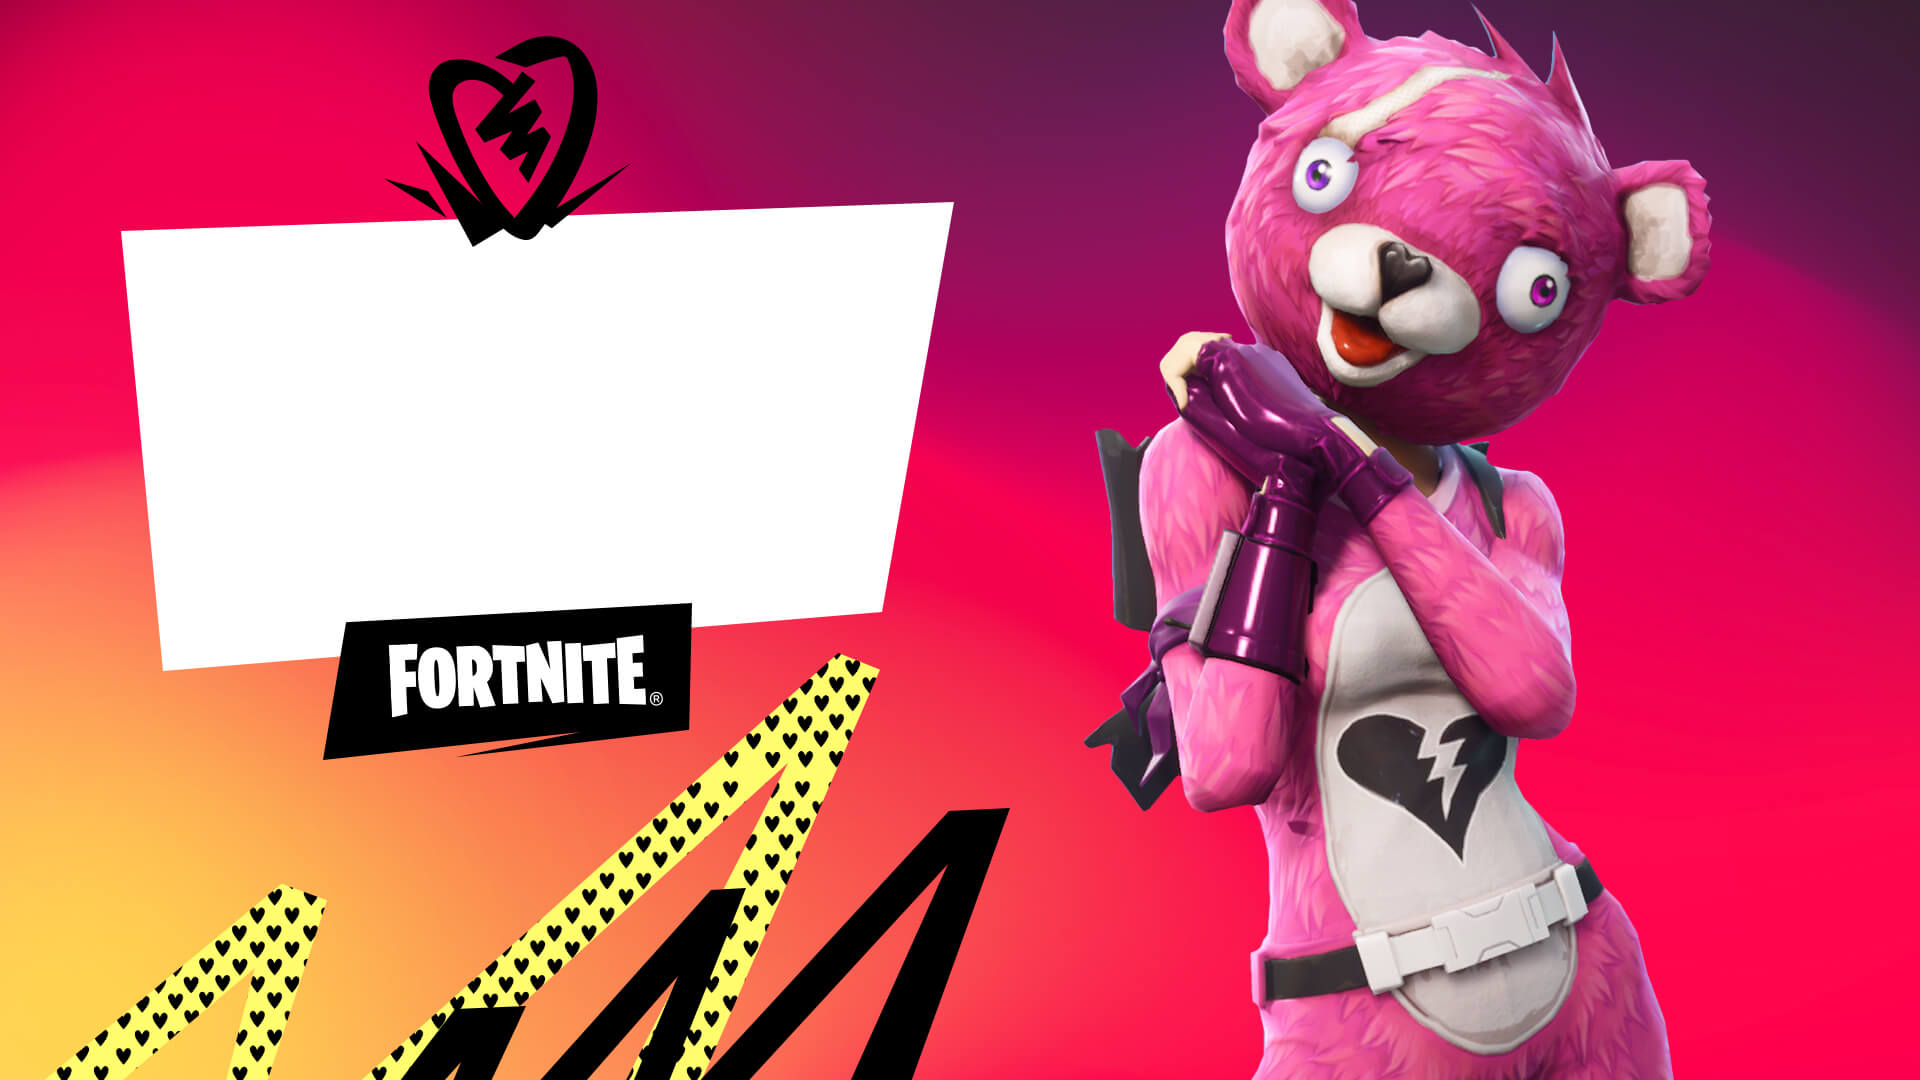 Fortnite Cuddle Team Leader Valentines Card